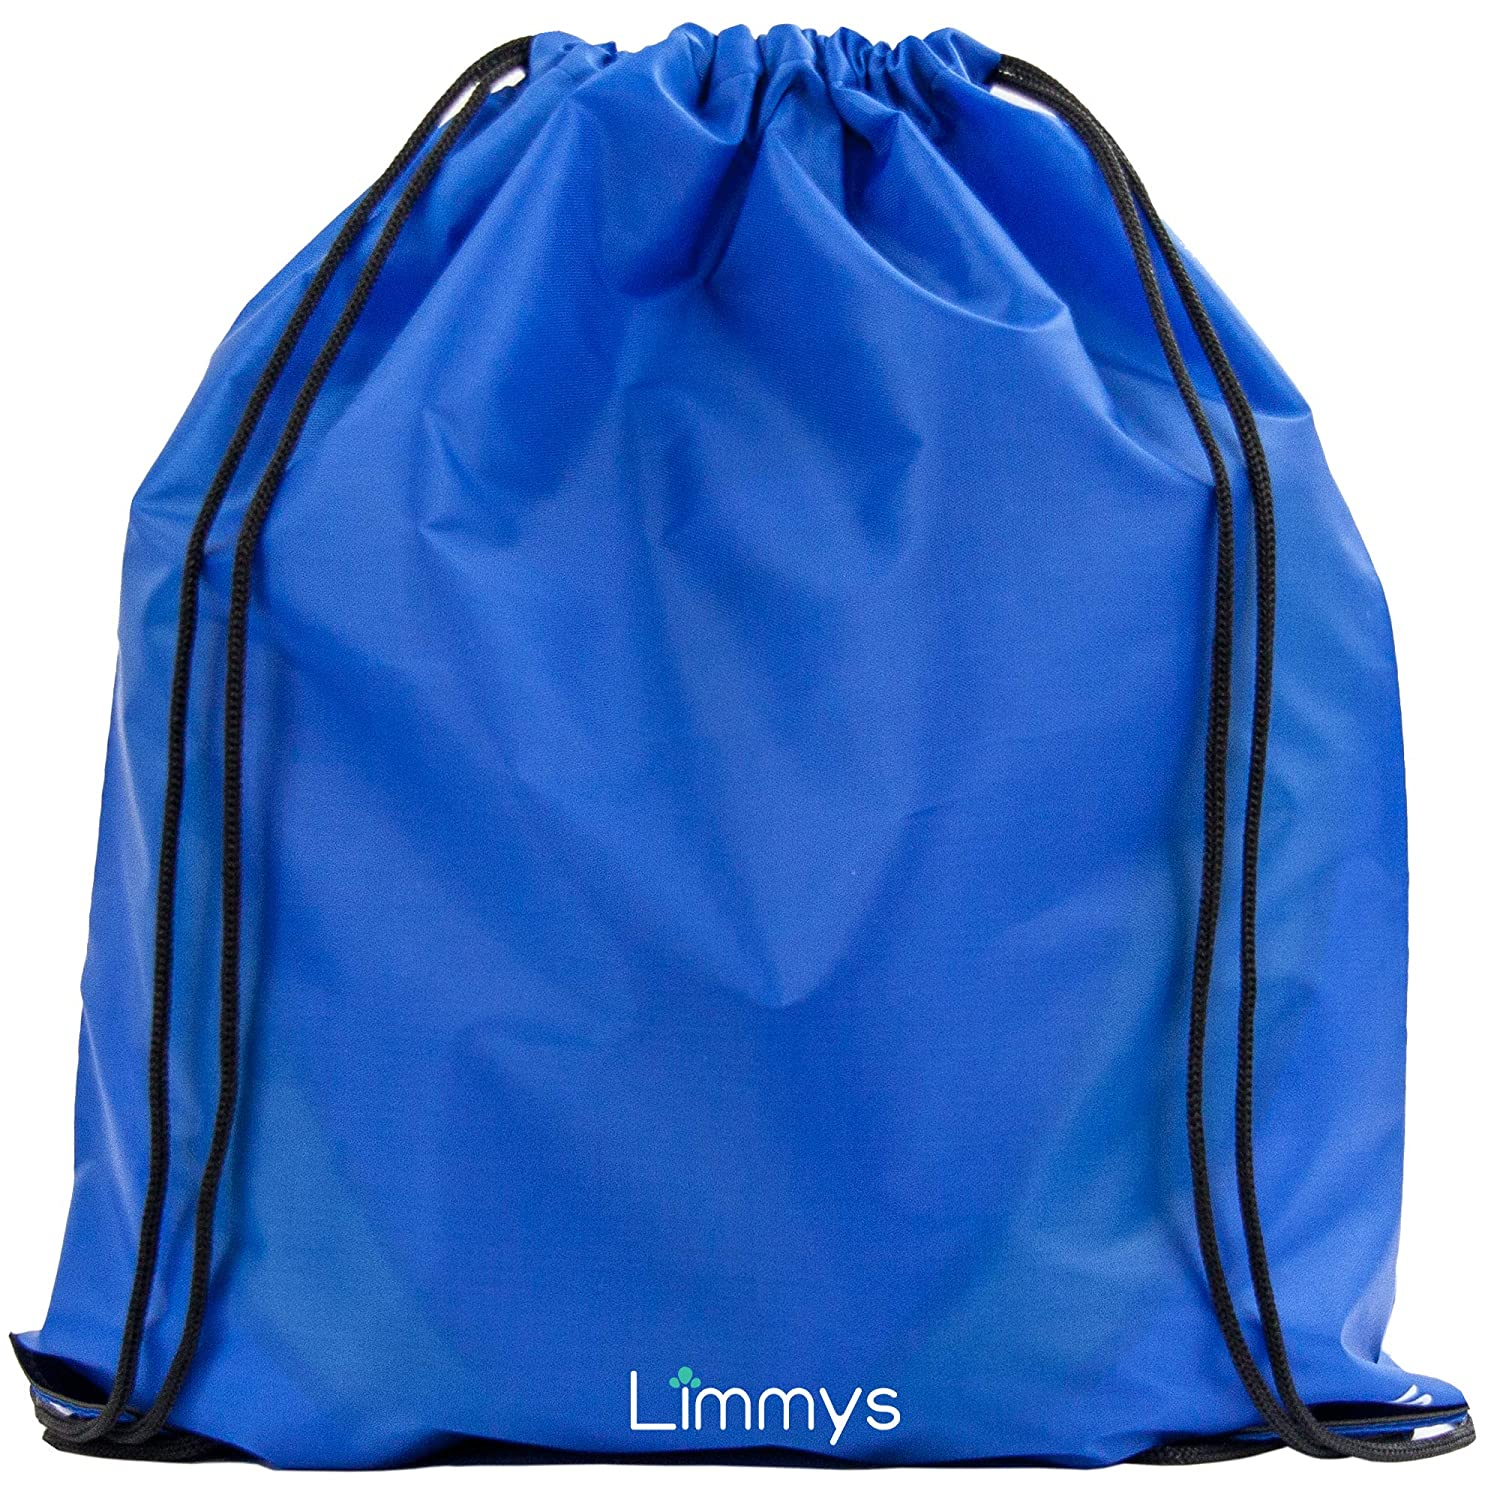 Limmys WATERPROOF DRAWSTRING PE KIT BAG, Gym, Swimming and other Sports Bag for Boys, Girls and Adults